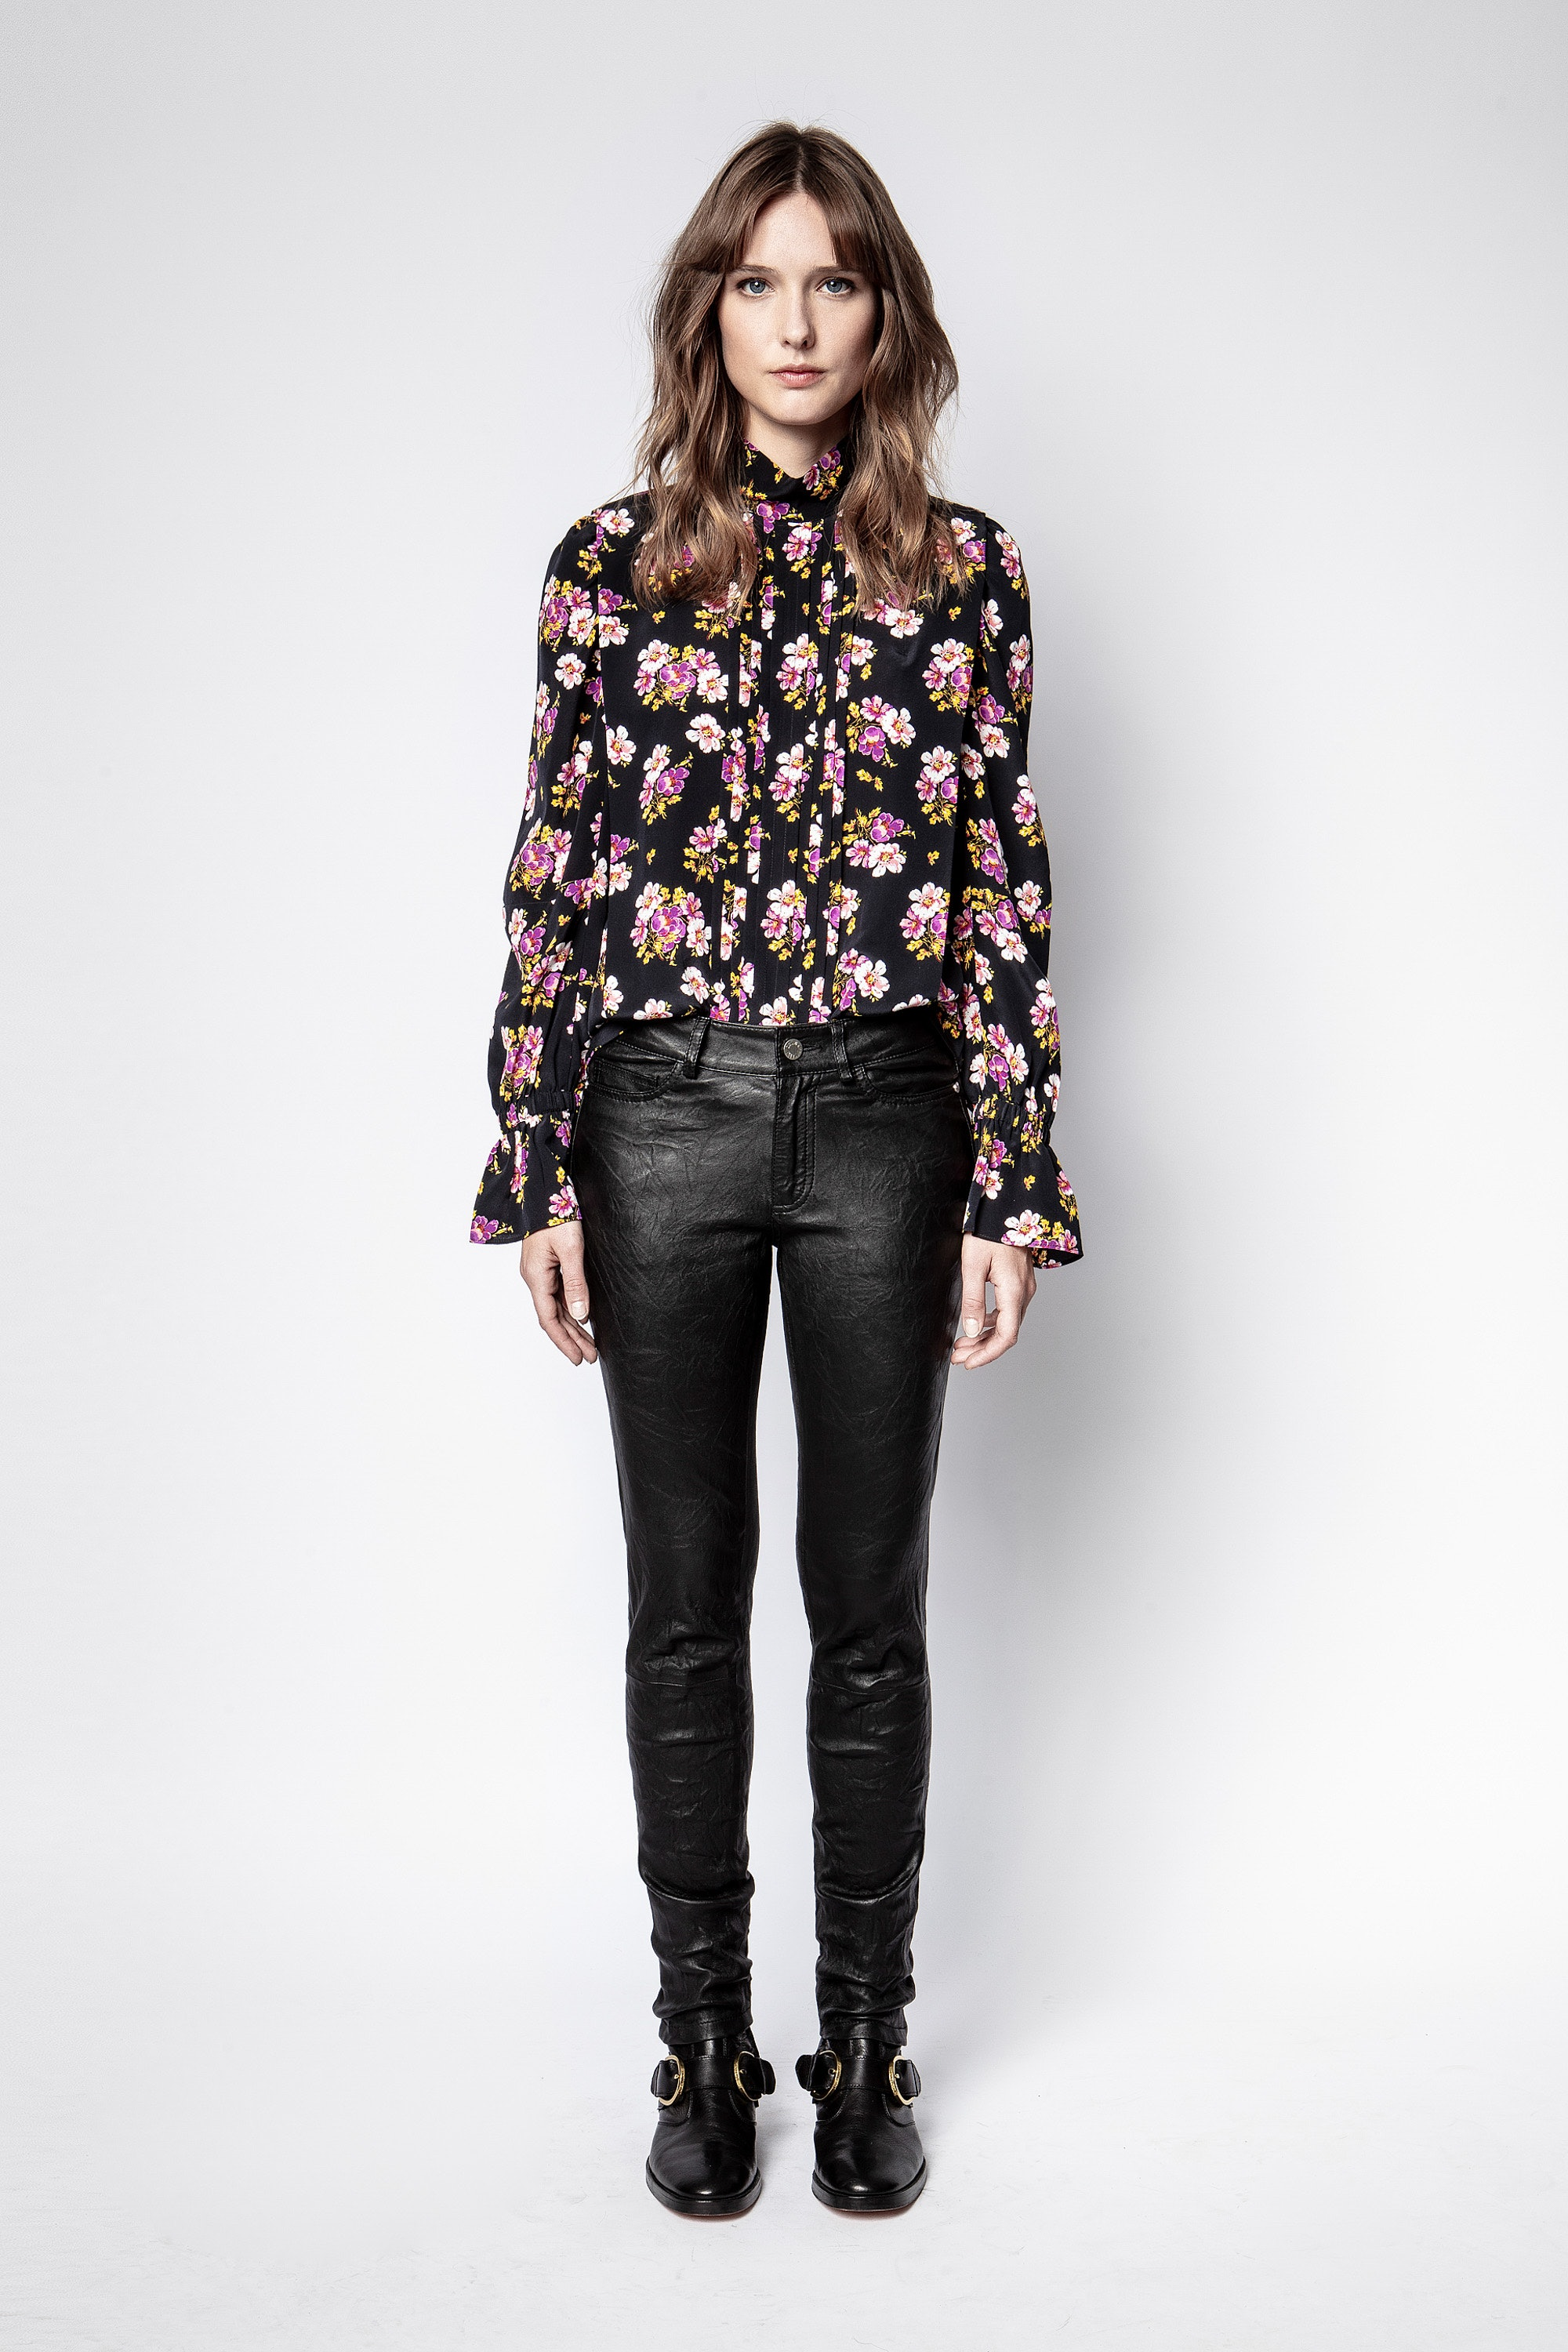 Tabbi Peonies Top